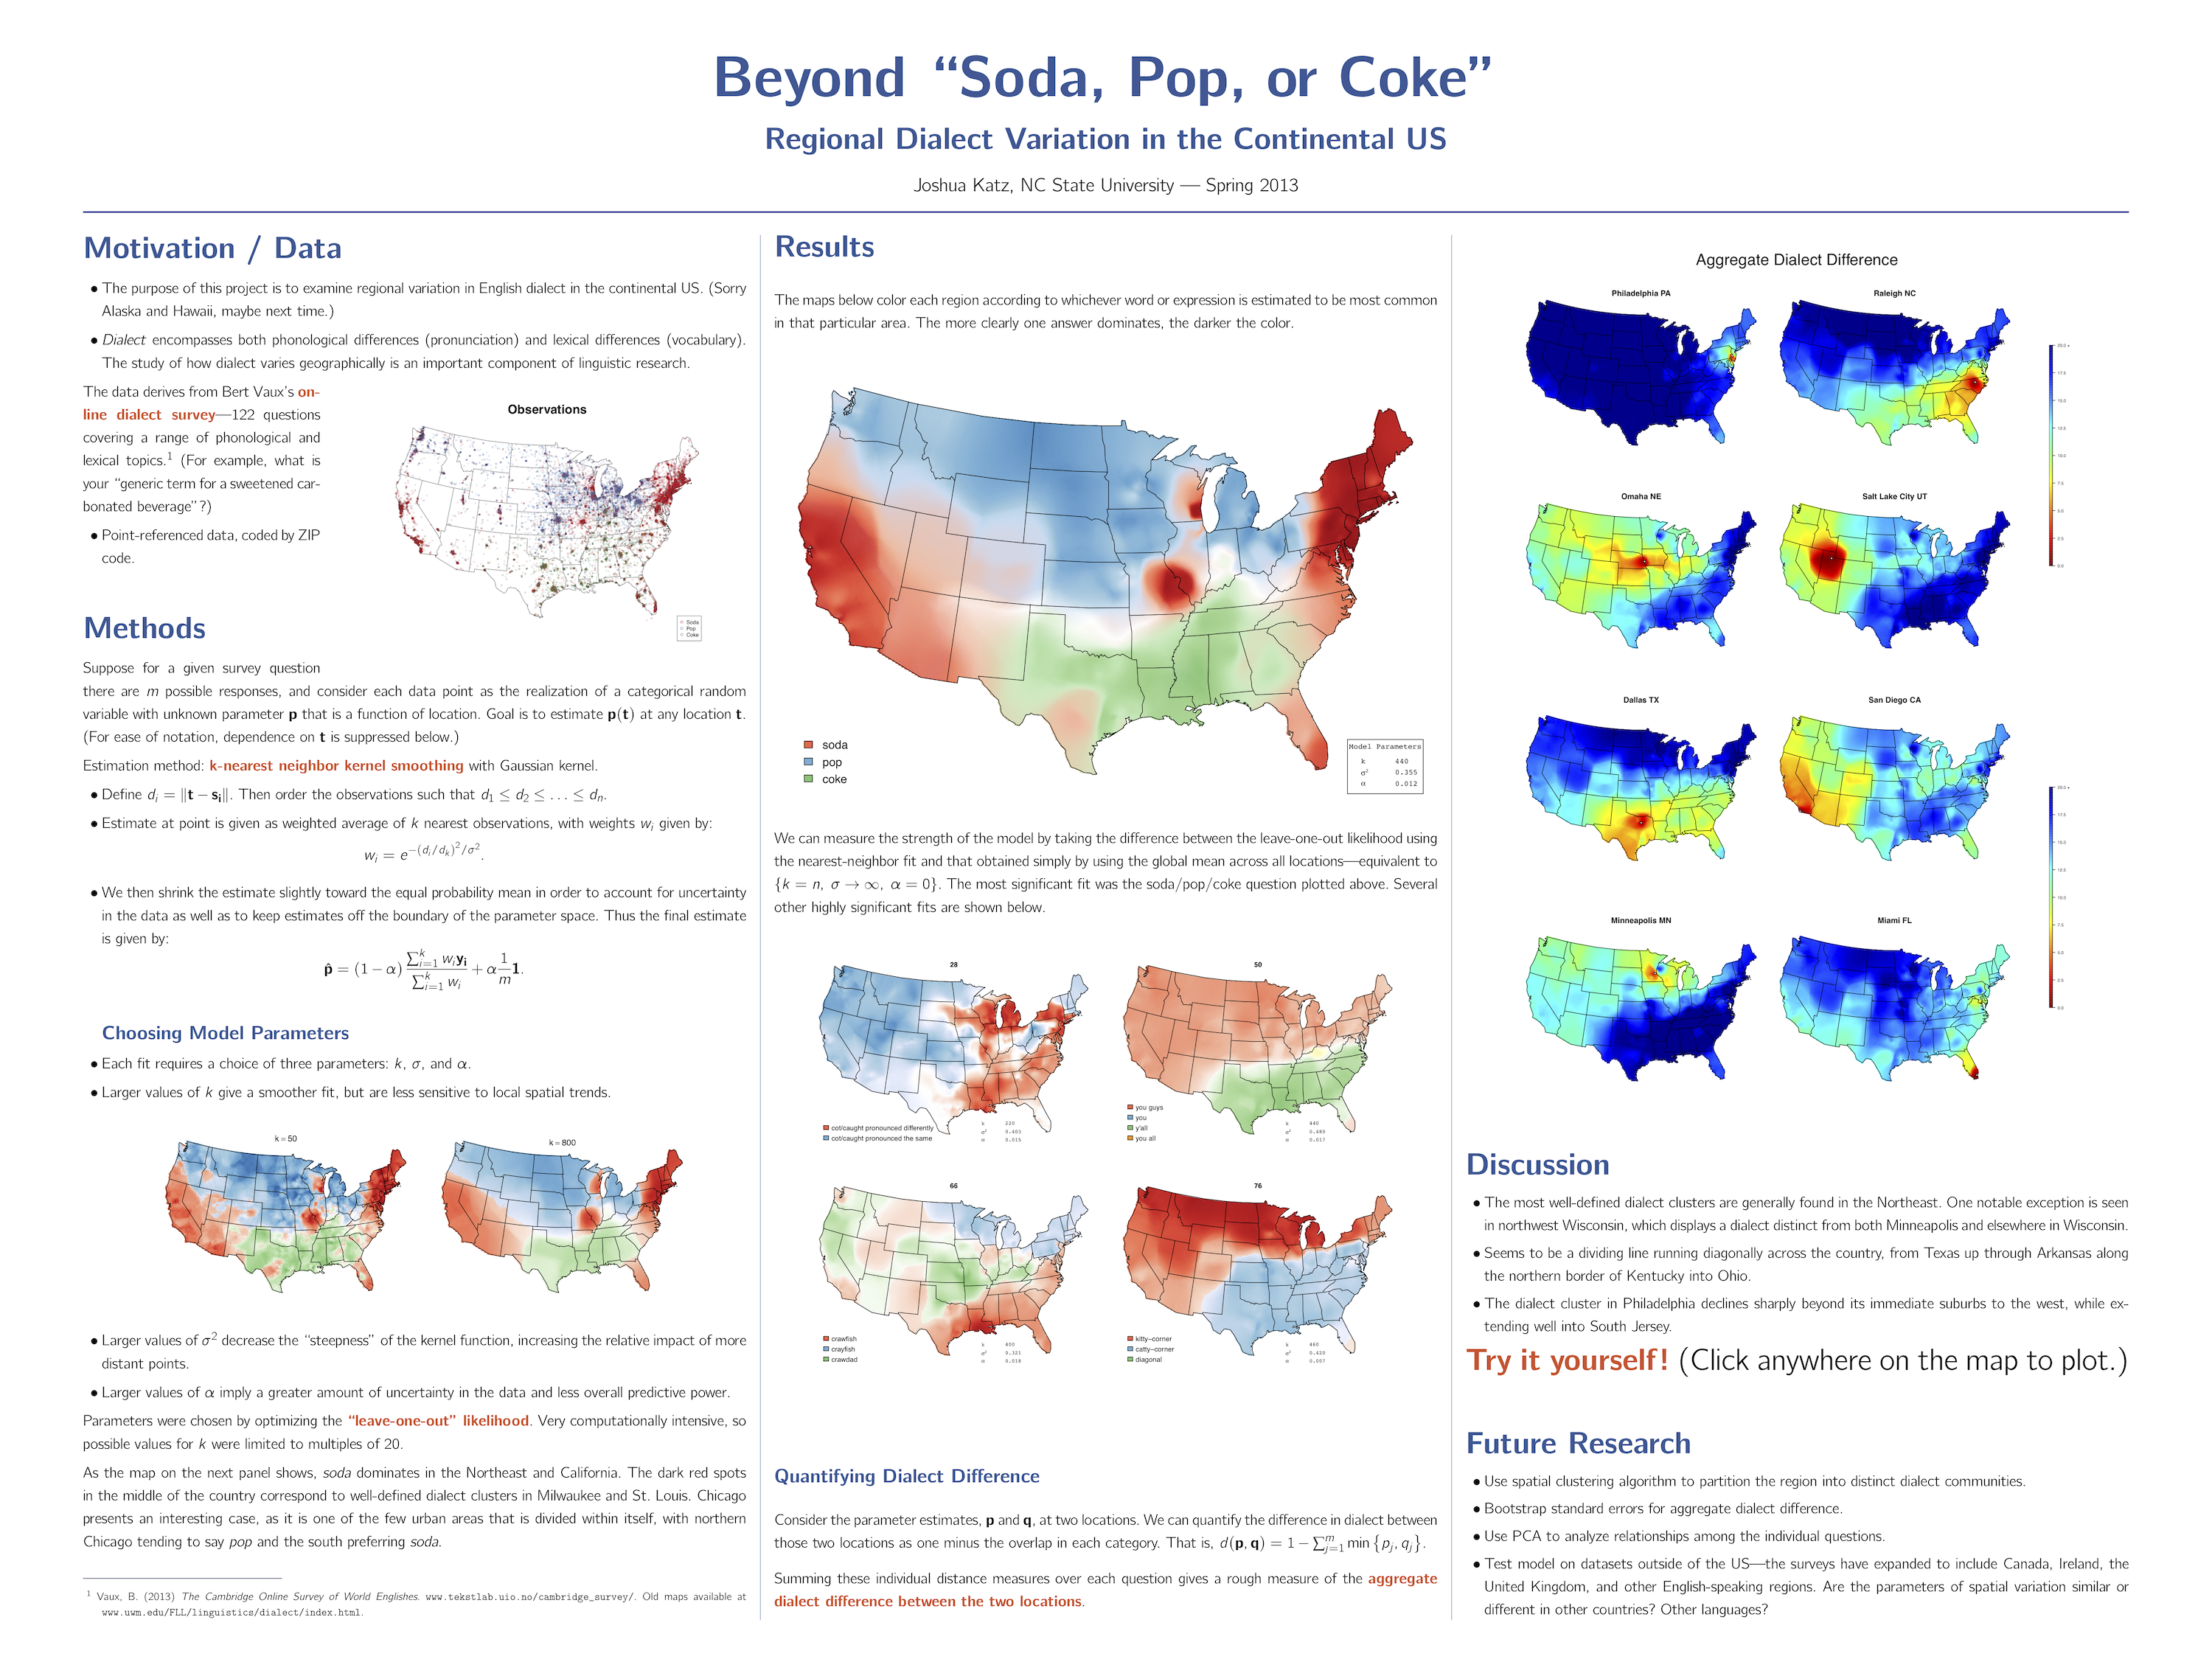 Beyond Soda Pop or Coke Regional Dialect Variation in the